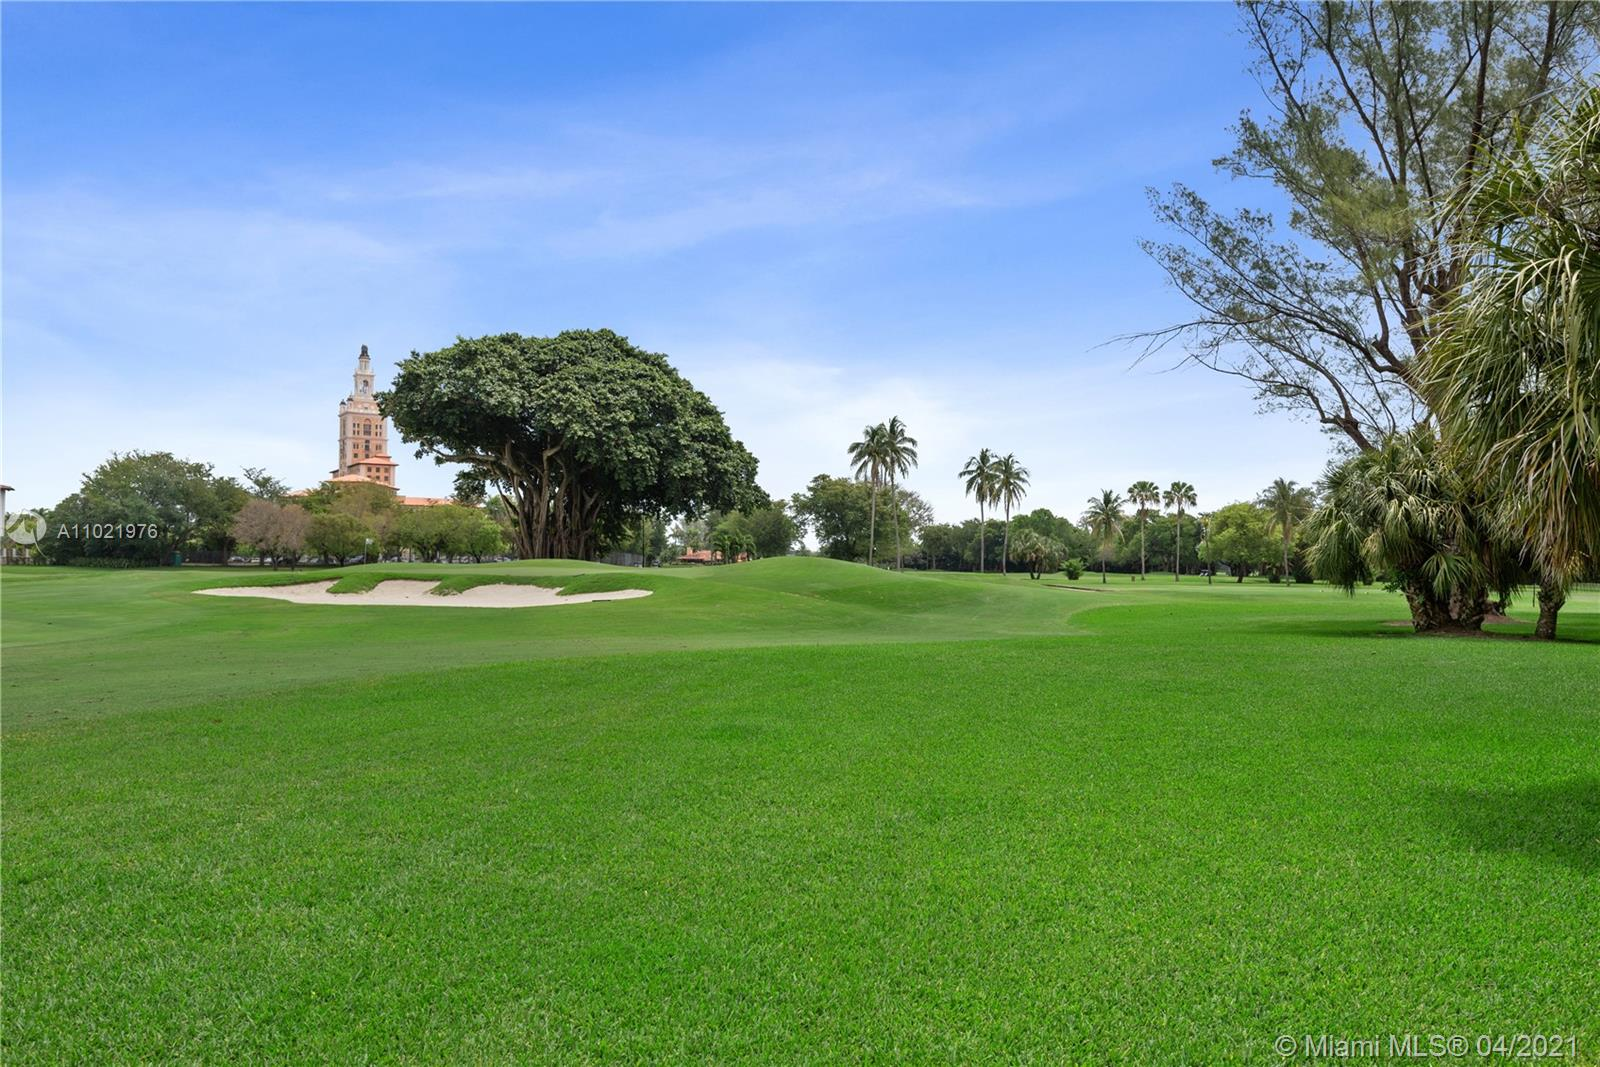 Views of Golfcourse and Biltmore Hotel.